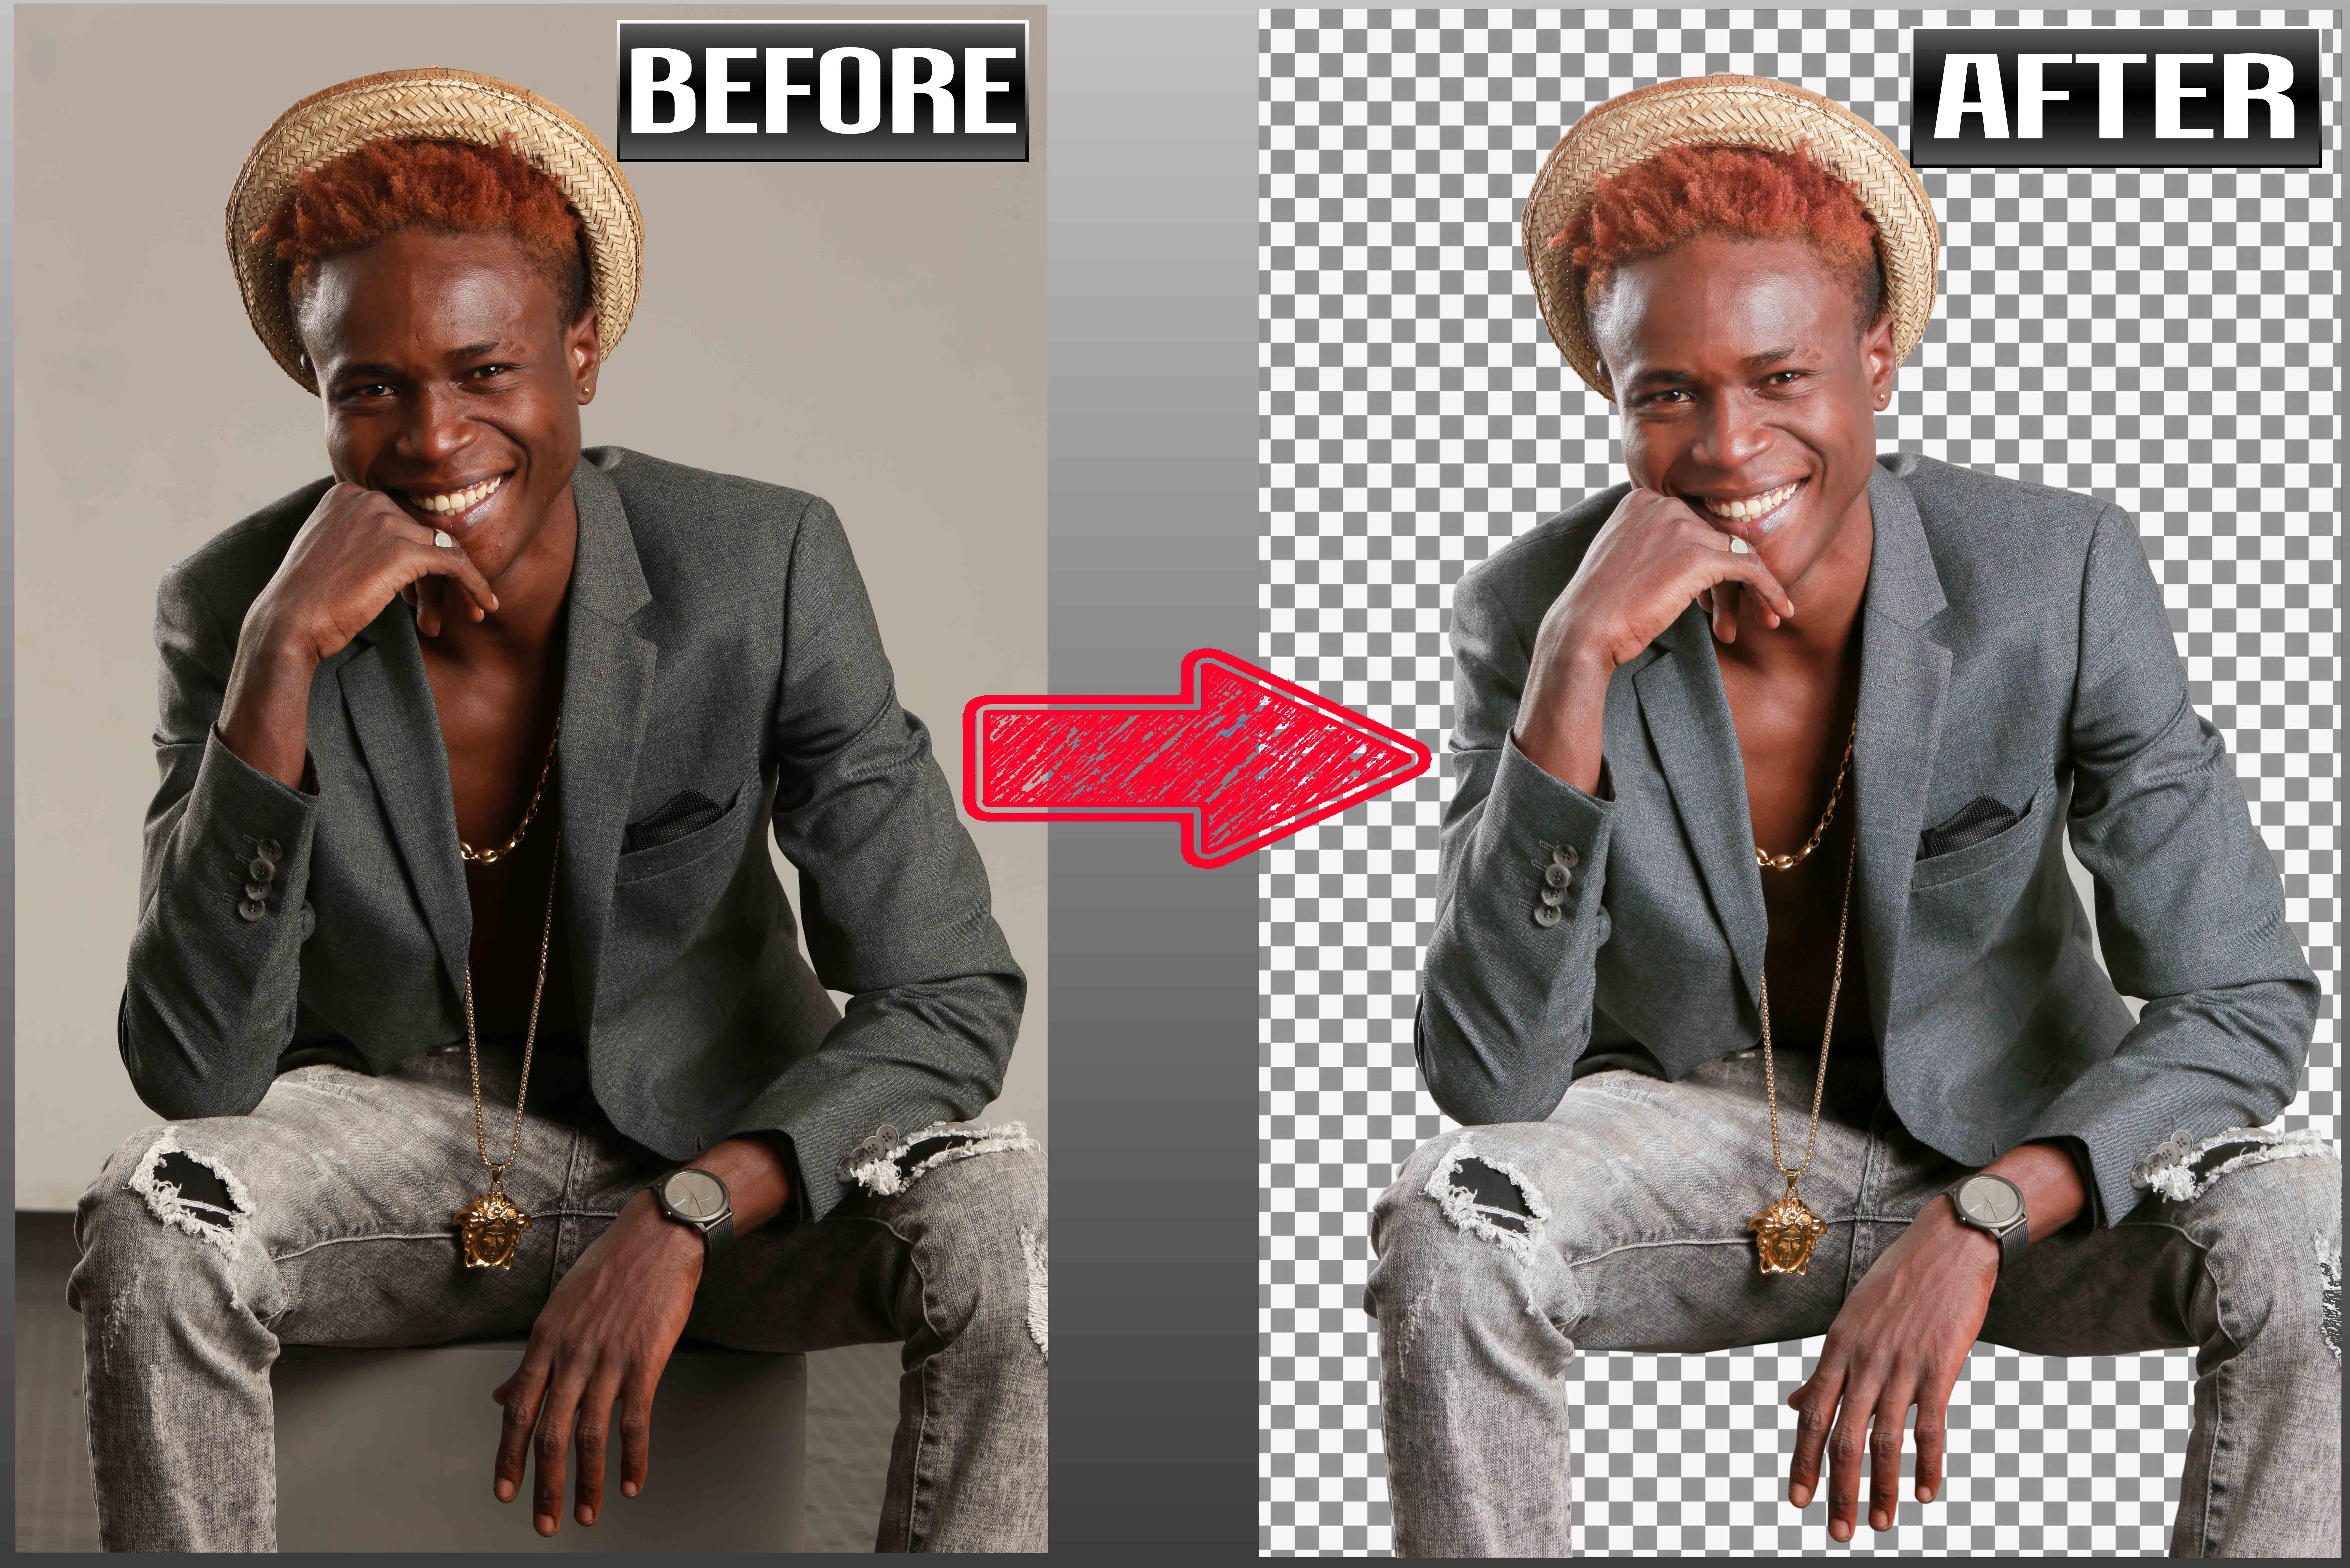 background remove from images quickly